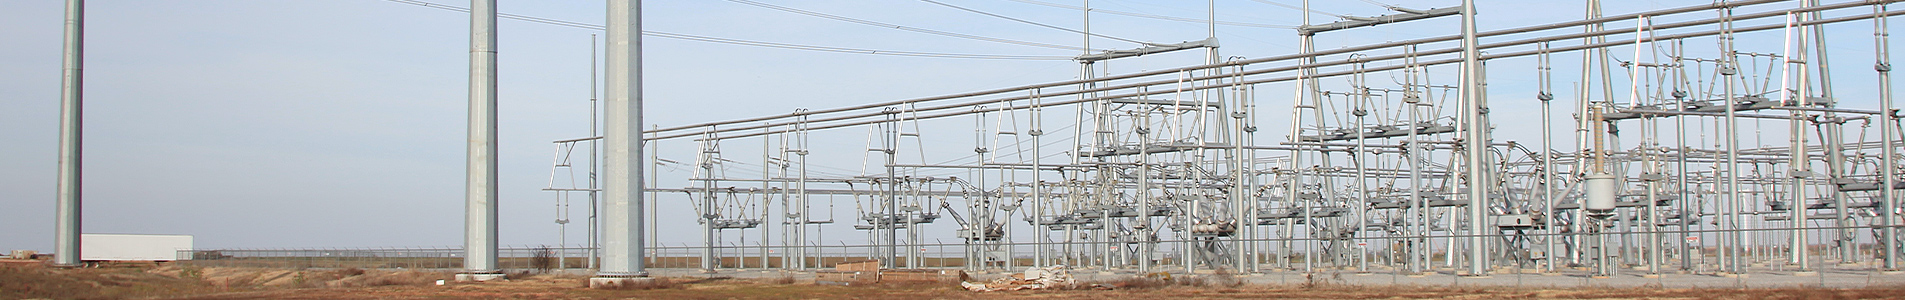 Utility Substation in field